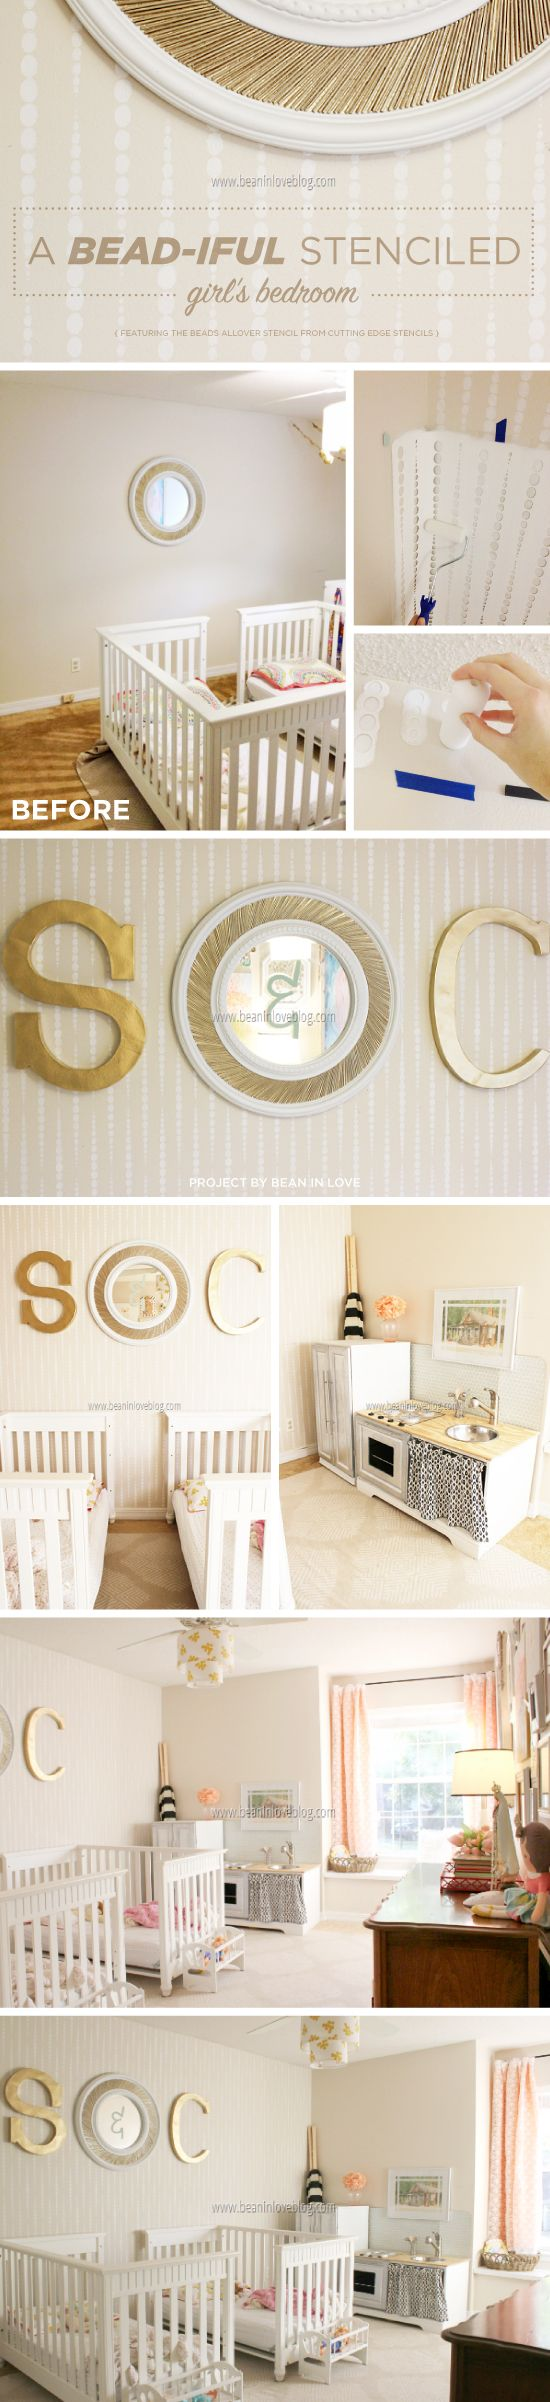 766 best from stencil stories blog posts images on pinterest cutting edge stencils shares a diy girls stenciled bedroom using the beads allover stencil http wall stencil patternswall amipublicfo Gallery